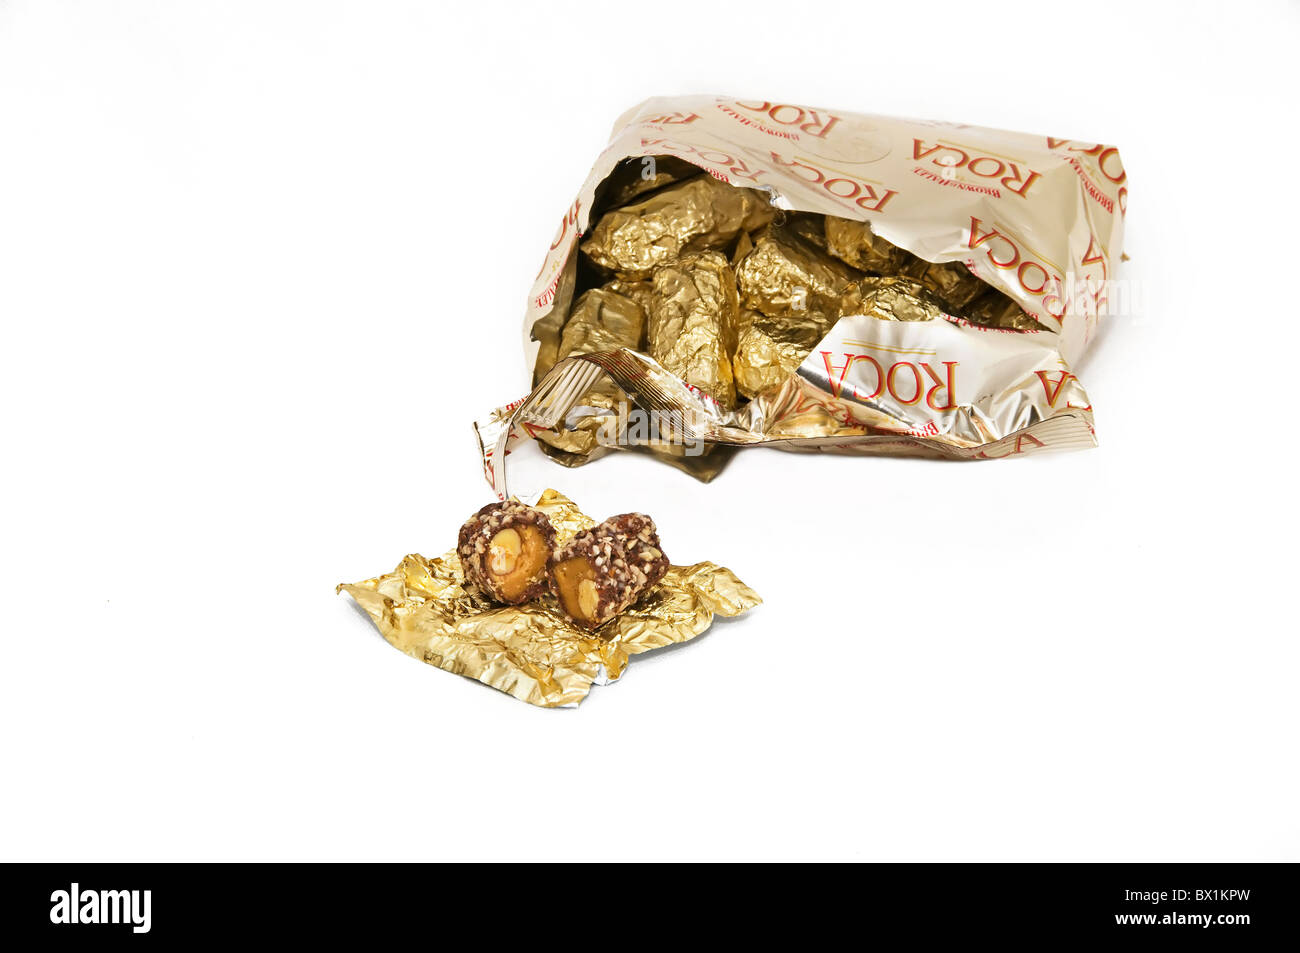 An open piece of Almond Roca candy sits in front of an open bag filled with gold foil wrapped pieces. - Stock Image